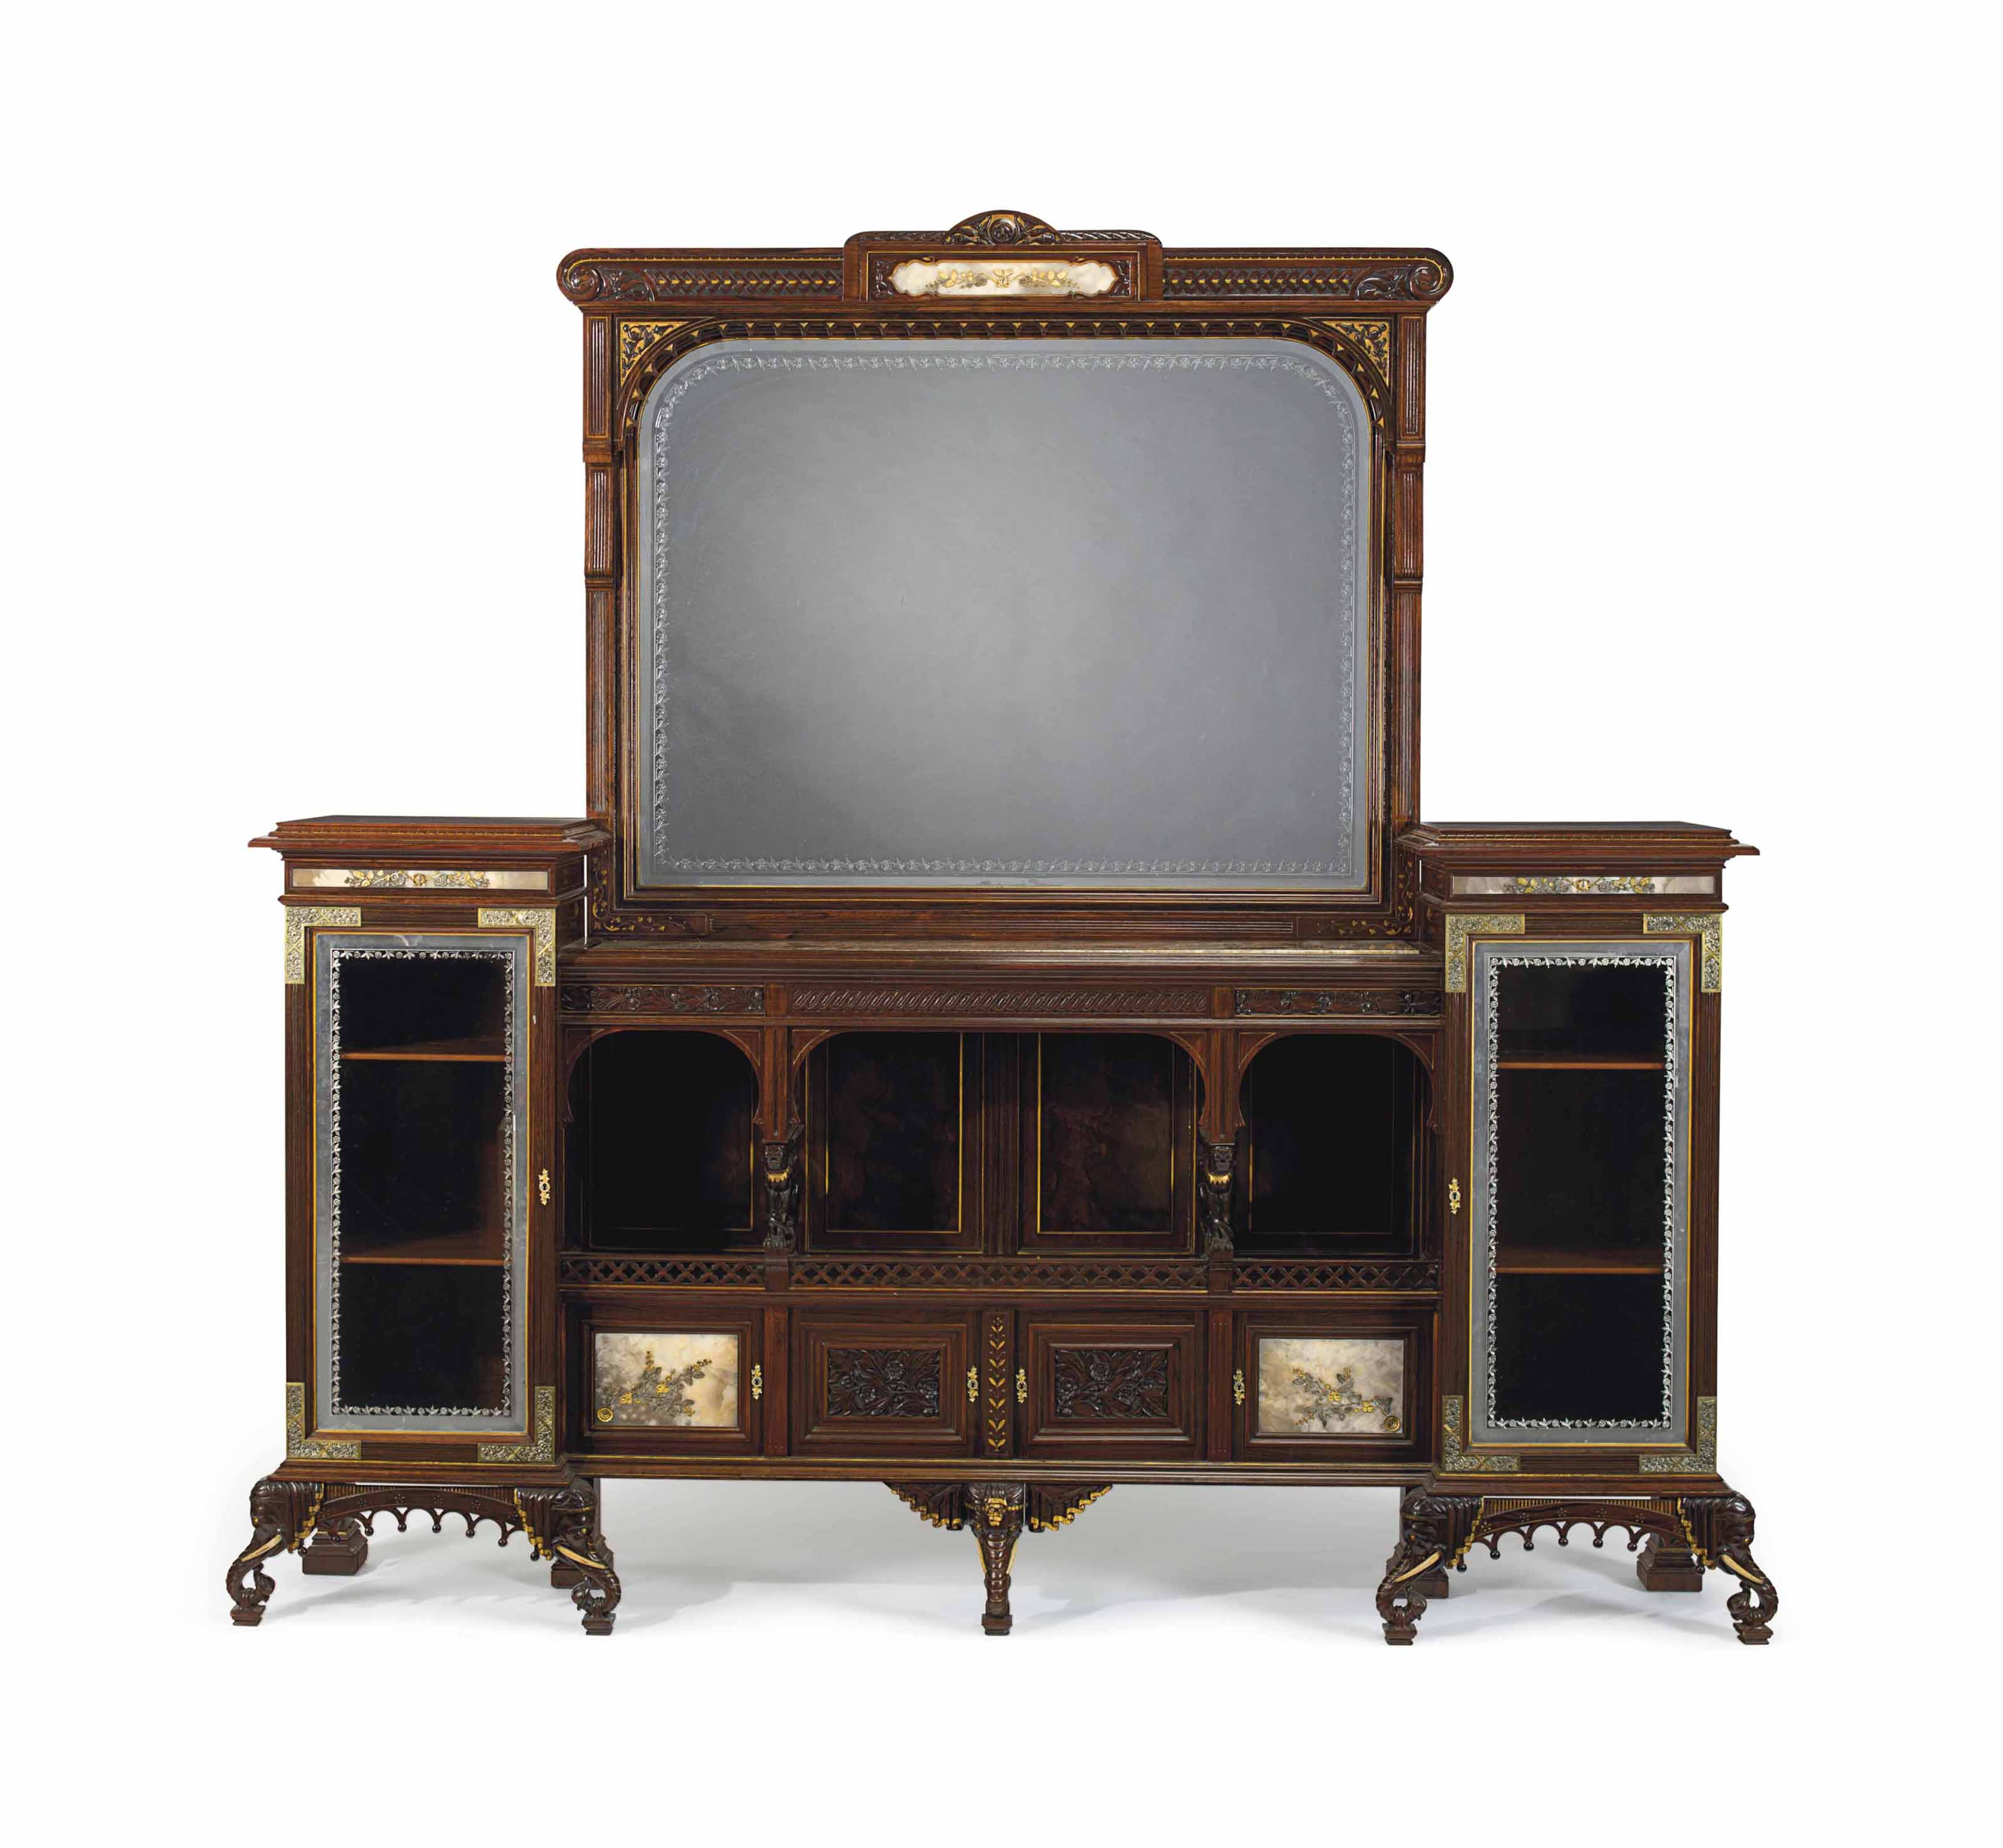 AN AESTHETIC MOVEMENT PARCEL-GILT, PART-EBONIZED, SILVER, ORMOLU AND ONYX- MOUNTED ROSEWOOD SIDEBOARD AND OVER-MIRROR